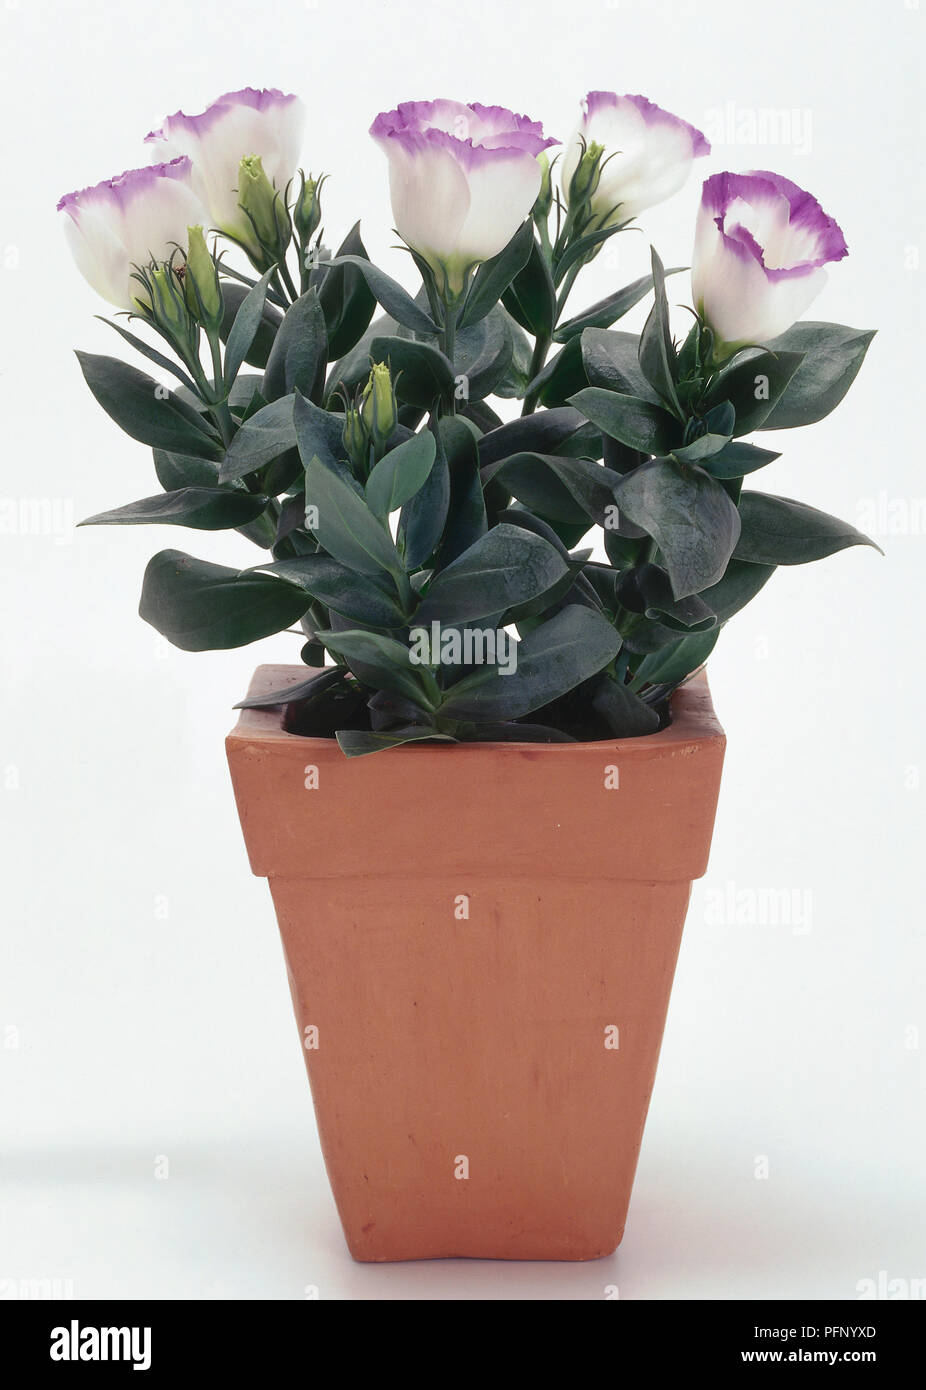 Prairie Gentian, Eustoma grandiflorum, in a plant pot. - Stock Image